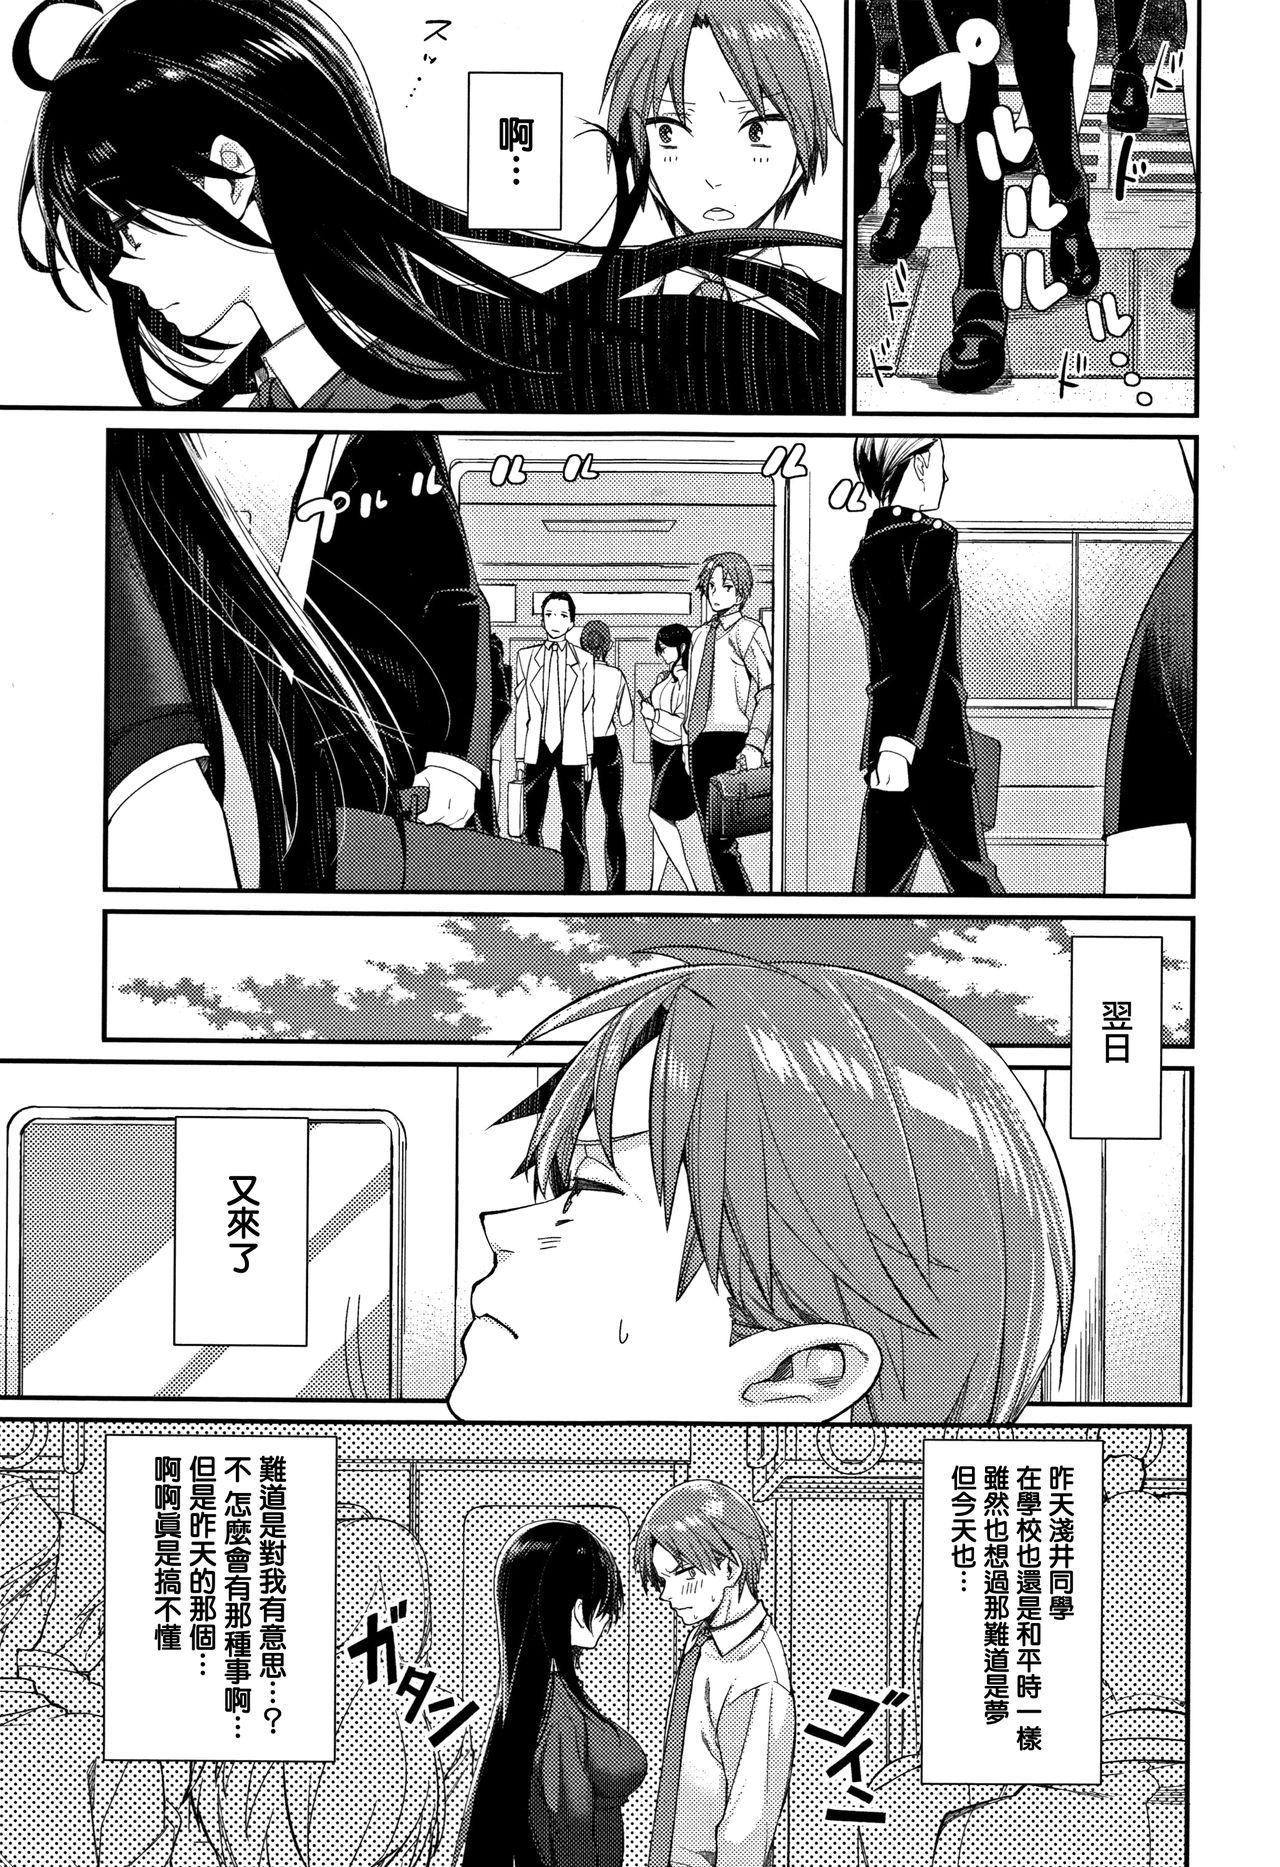 [MGMEE] Bokura no Etude - Our H Chu Do Ch.1-7 [Chinese] [無邪気漢化組] 106